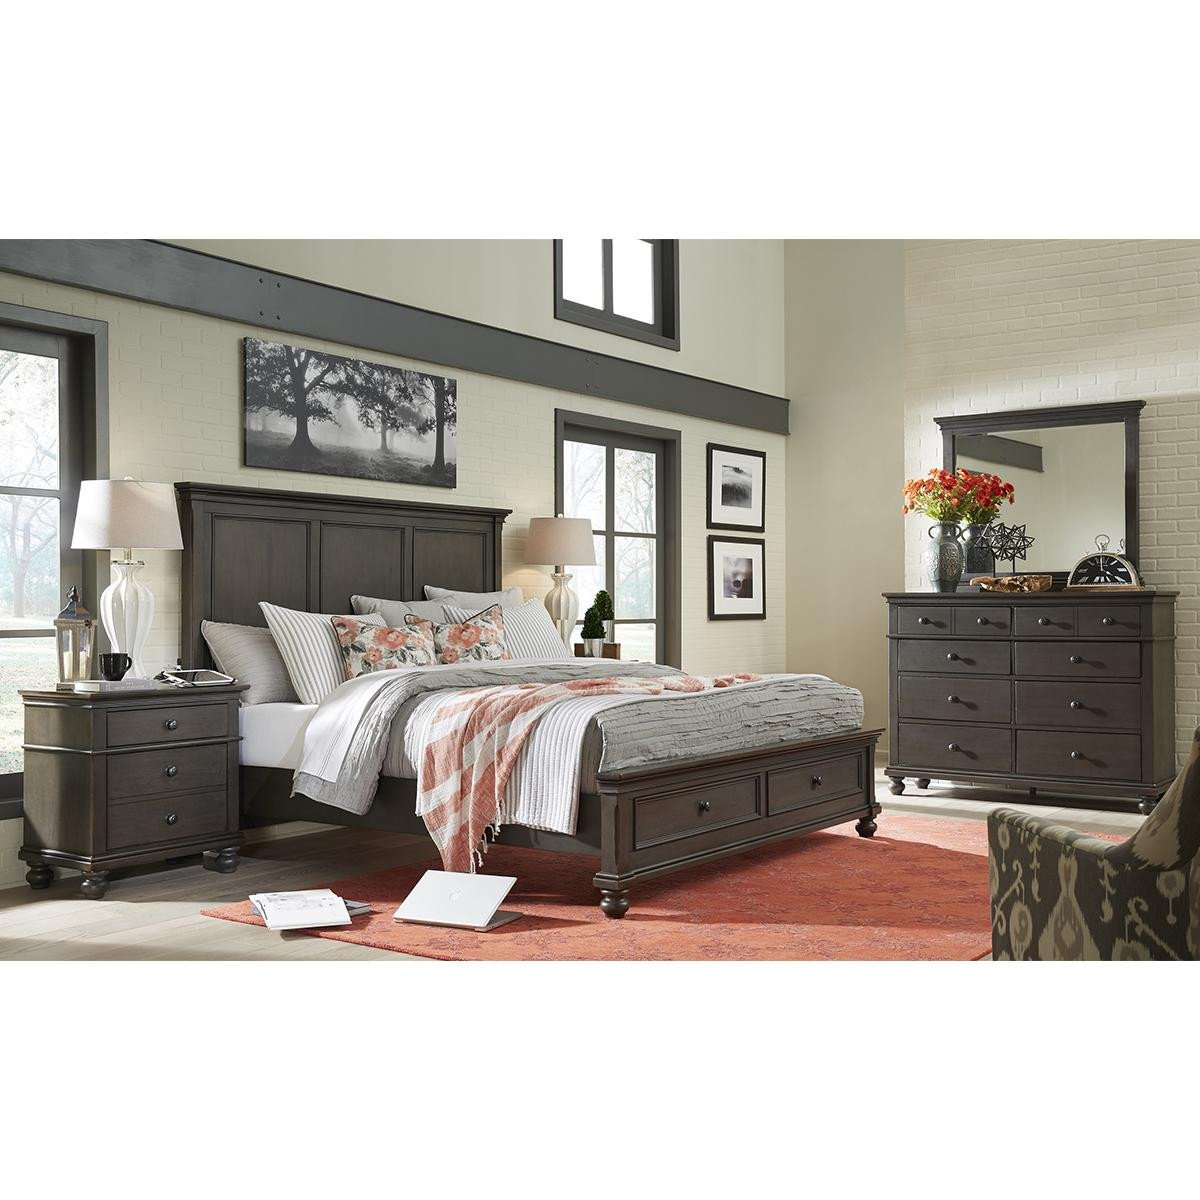 King Bedroom Set with Mattress Awesome Riva Ridge Oxford 4 Piece King Bedroom Set In Peppercorn